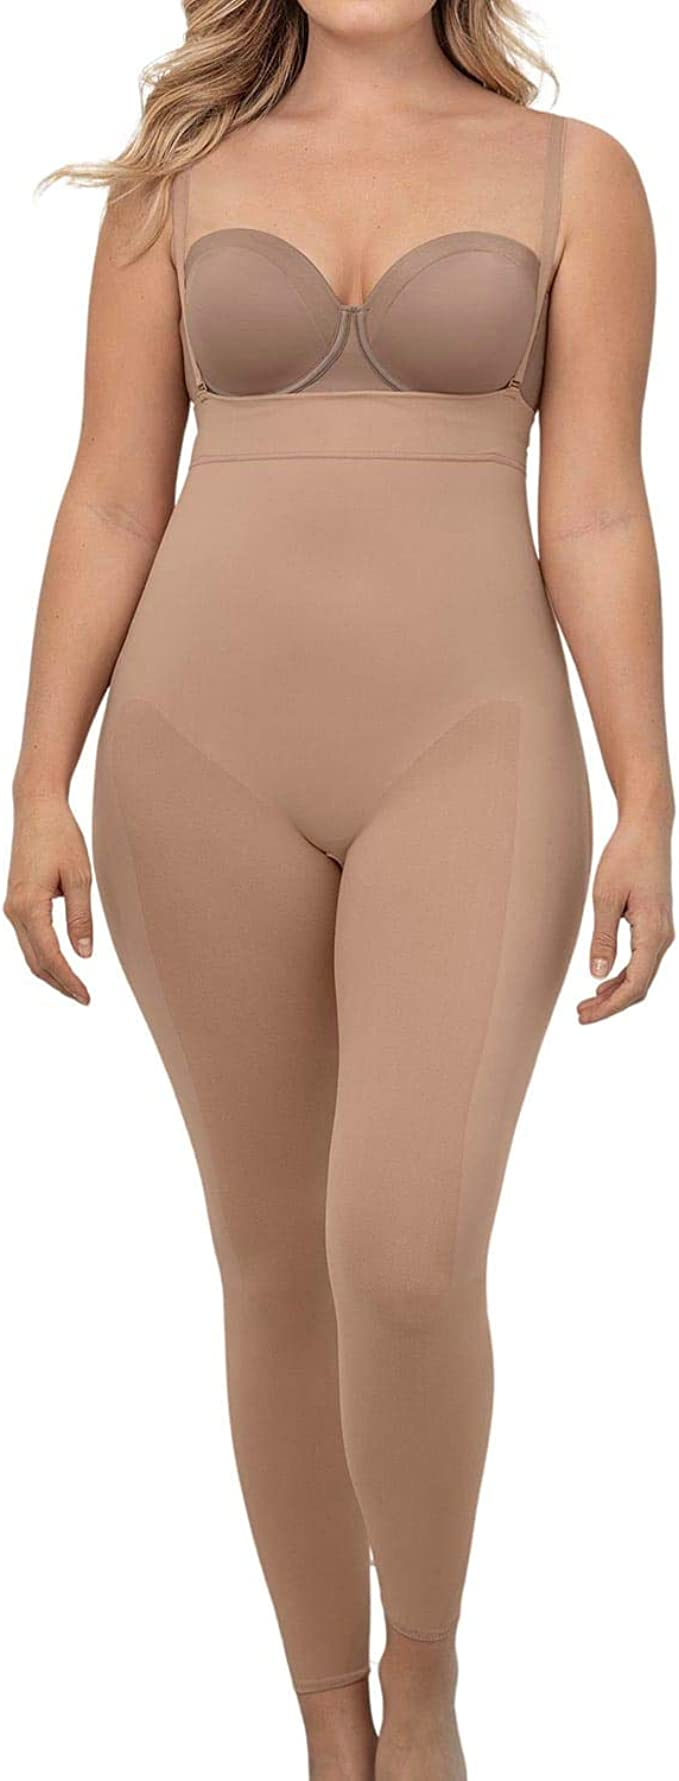 Details about  /Coloriented Women Body Shapers Elastic Silicone Rubber Waist Lateral Bone Mesh